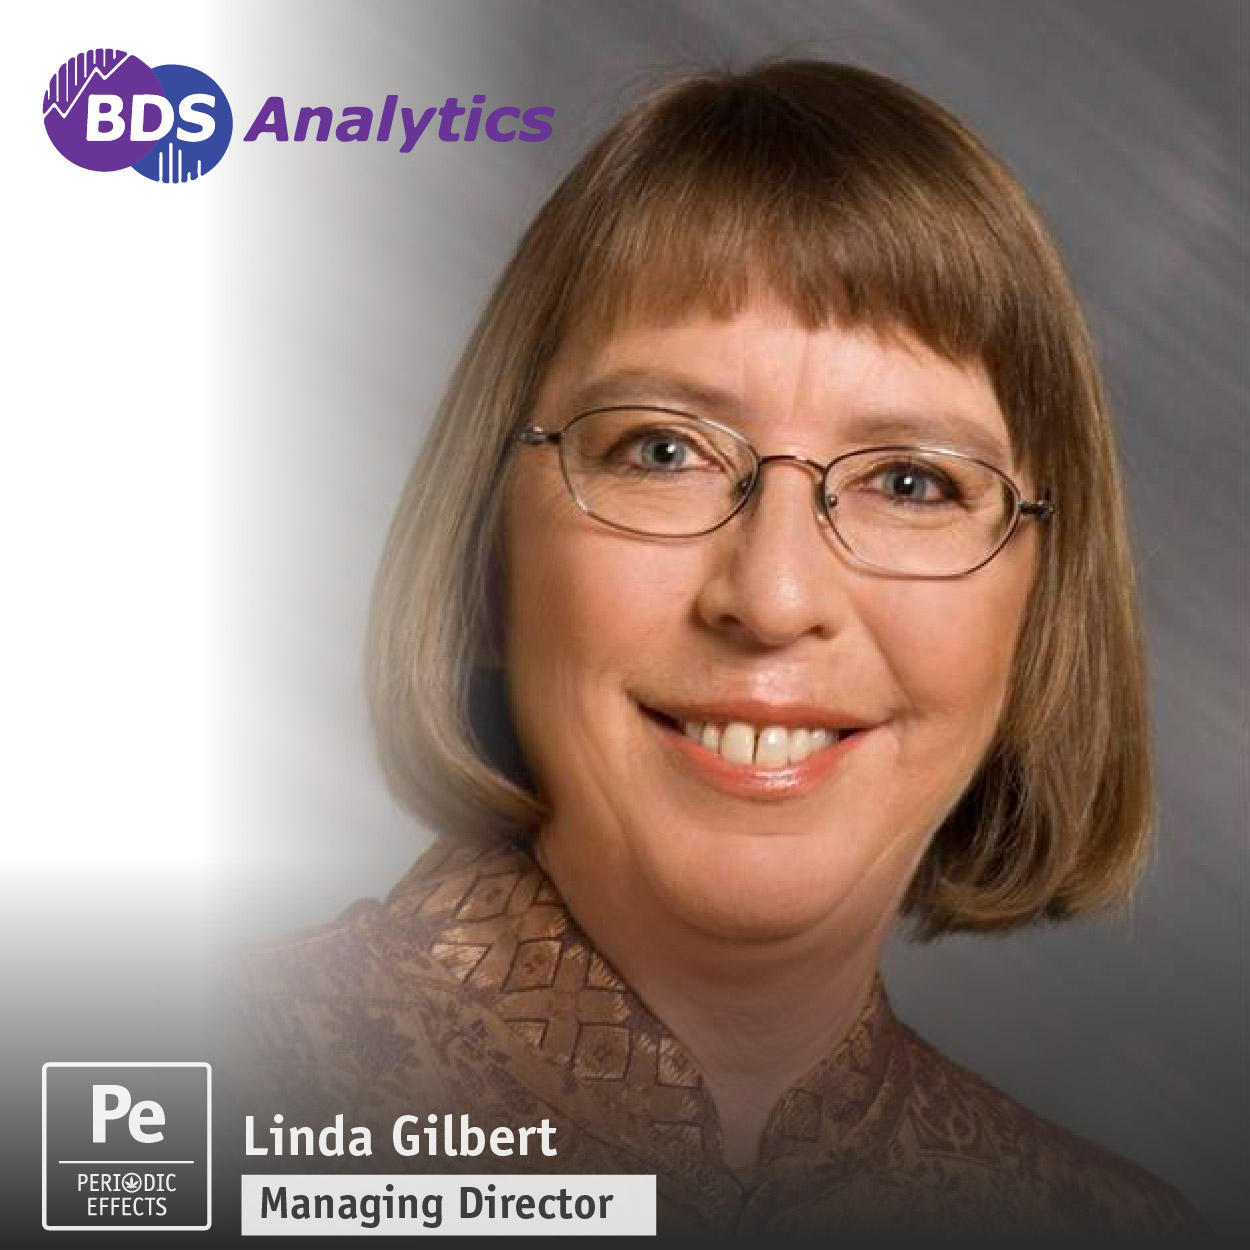 Linda Gilbert, Managing Director of BDS Analytics, a data-driven company focused on cannabis consumer insights and demographics